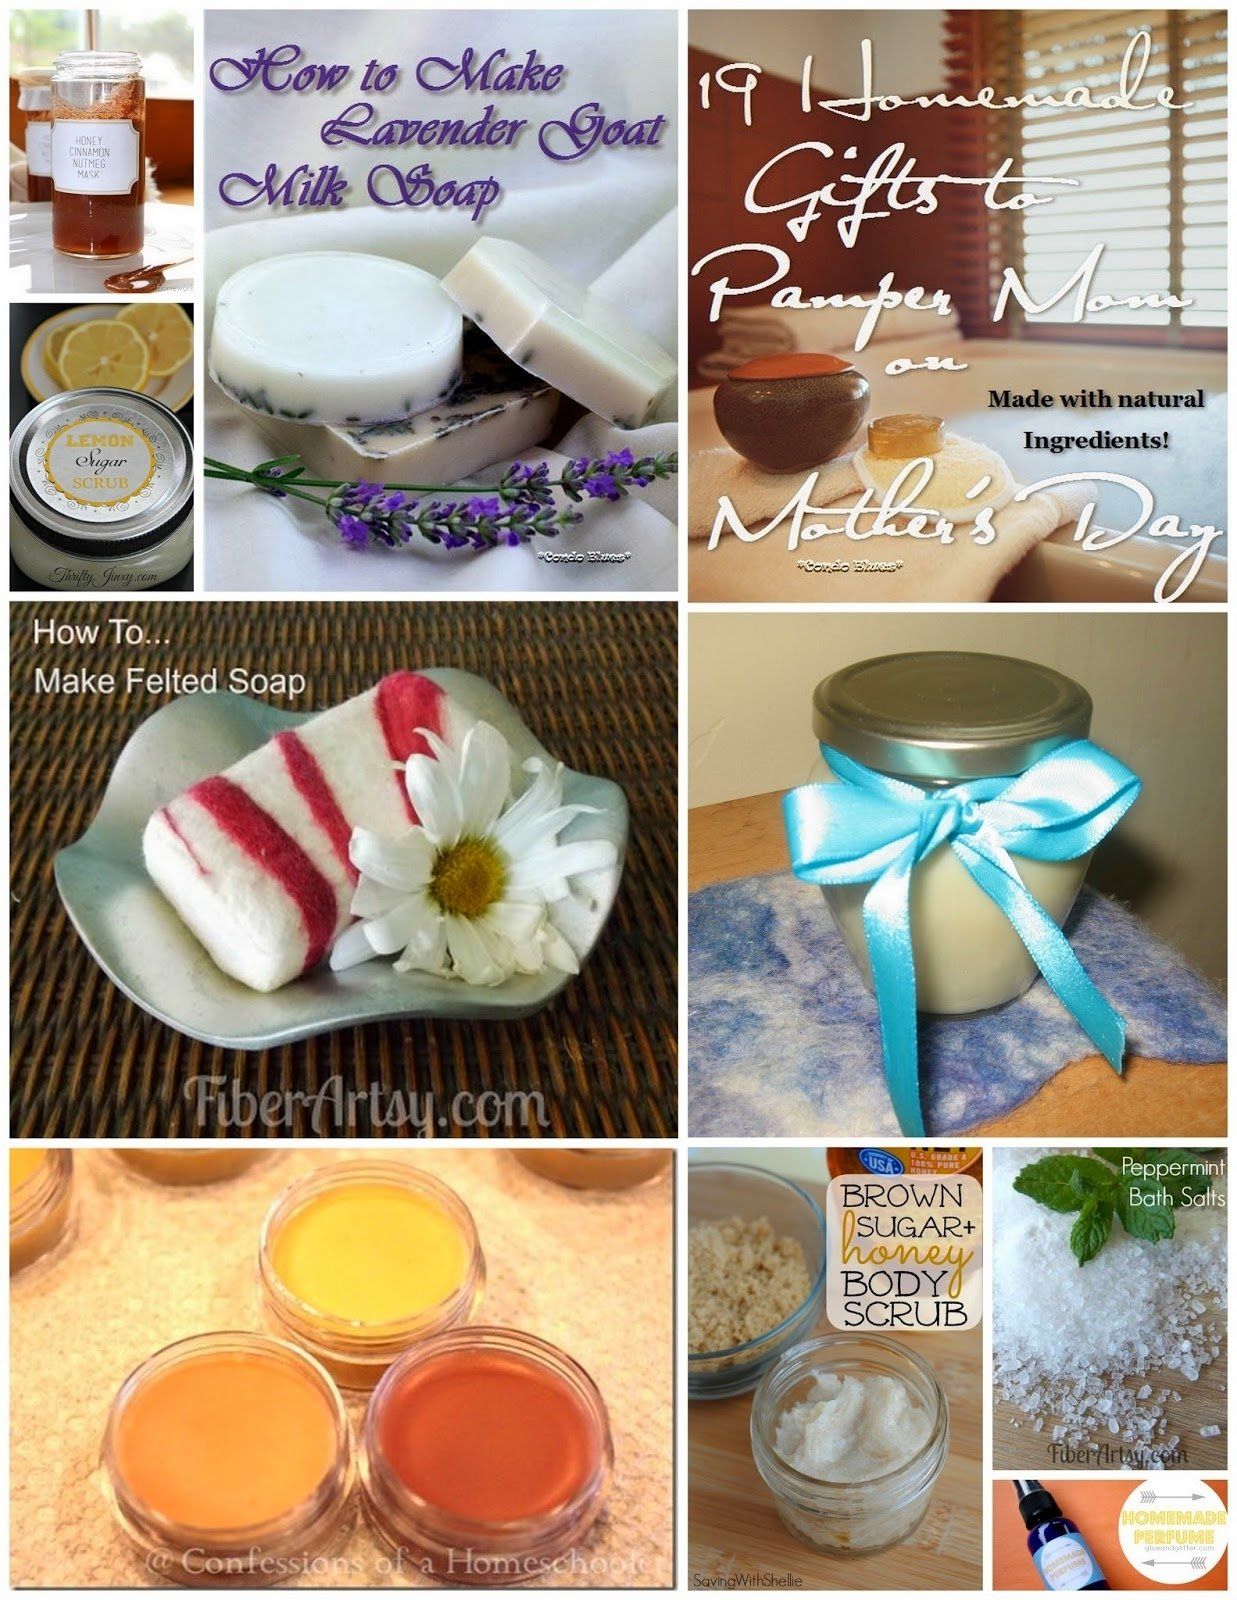 10 Lovable Homemade Gift Ideas For Women condo blues 19 homemade gift ideas to pamper mom on mothers day 2020